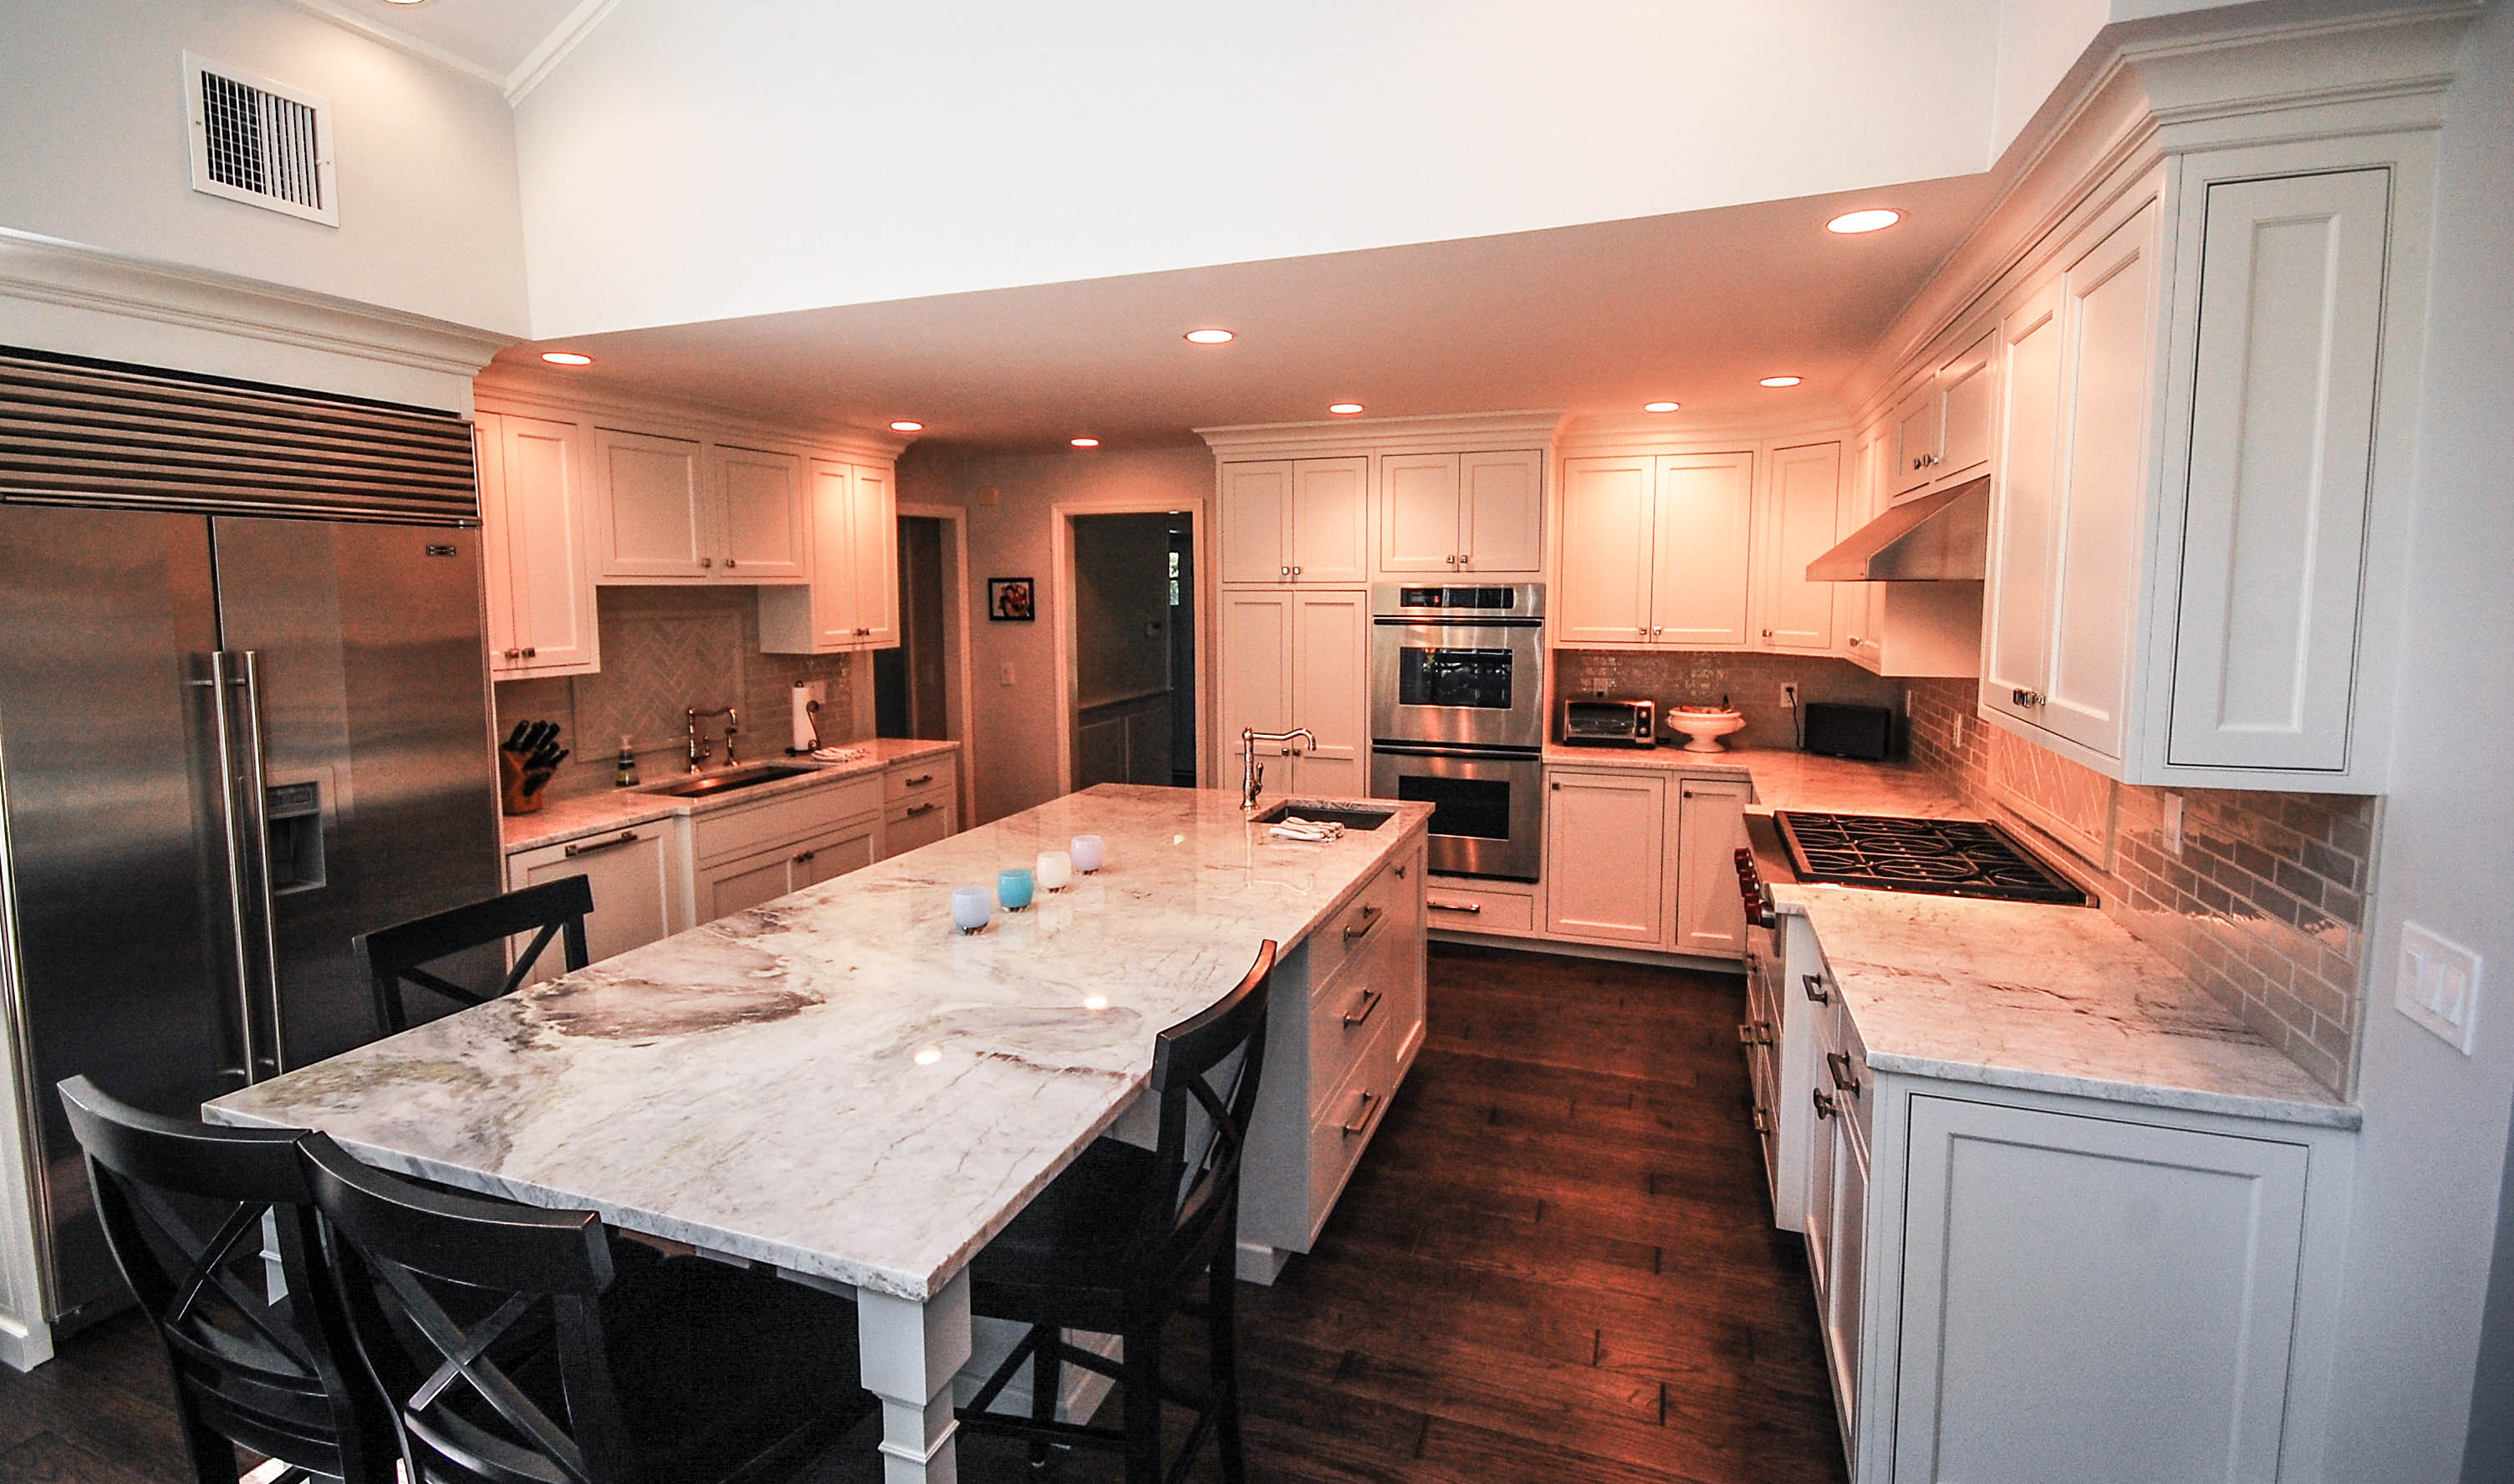 general contractor, kitchen renovated by SIP Building Solutions - Westport, Fairfield, Stamford, Greenwich, Danbury CT